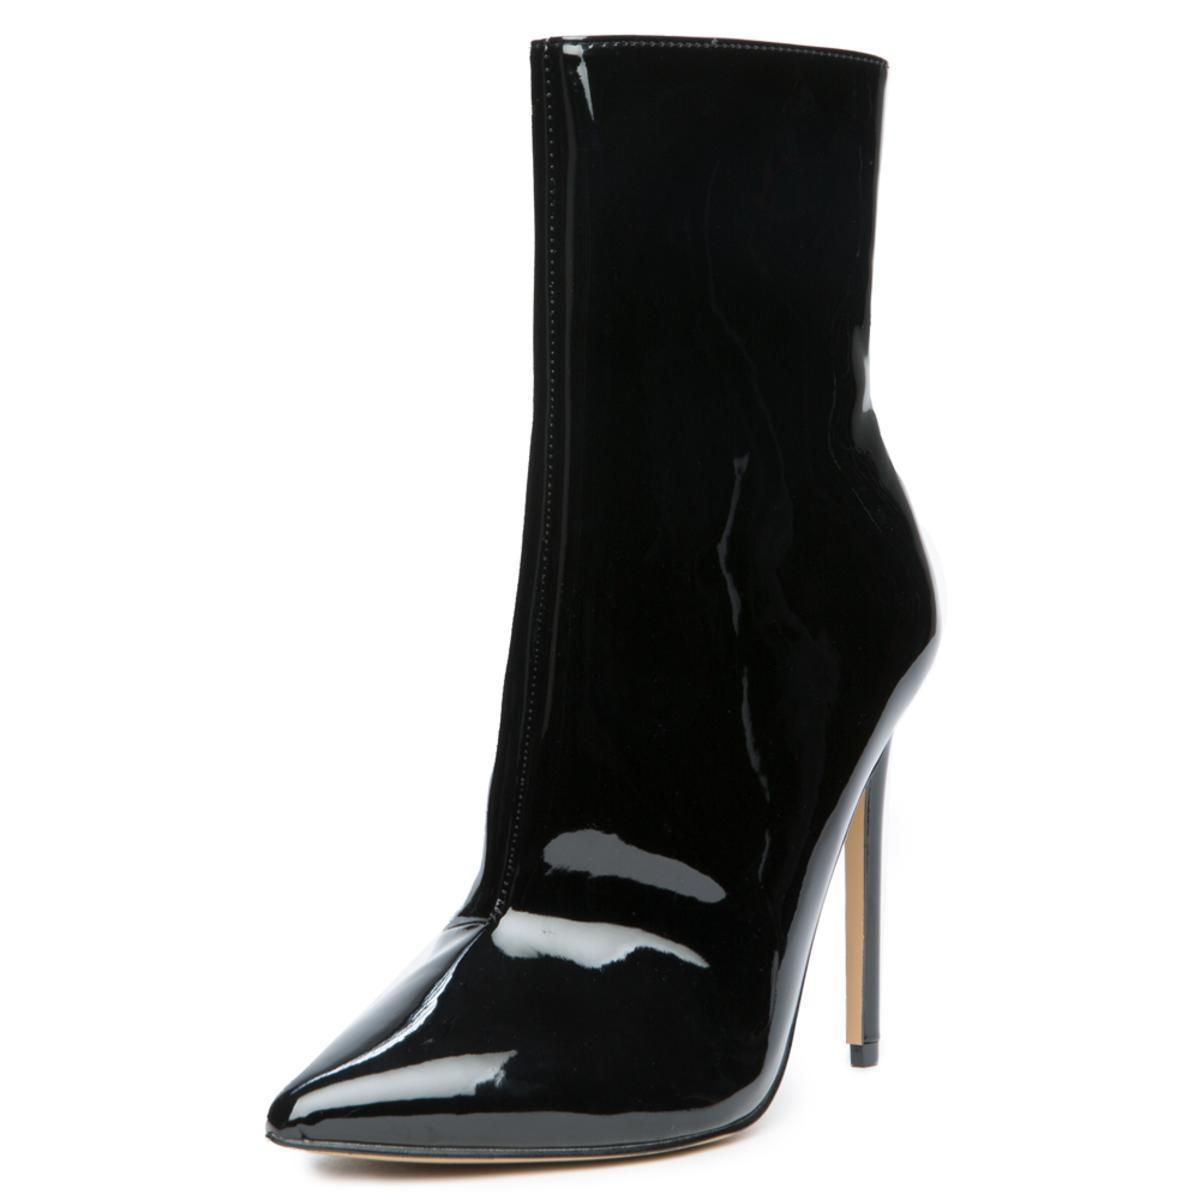 733f64580ae0 Steve Madden - Wagner Black Patent Heeled Booties - Lyst. View fullscreen